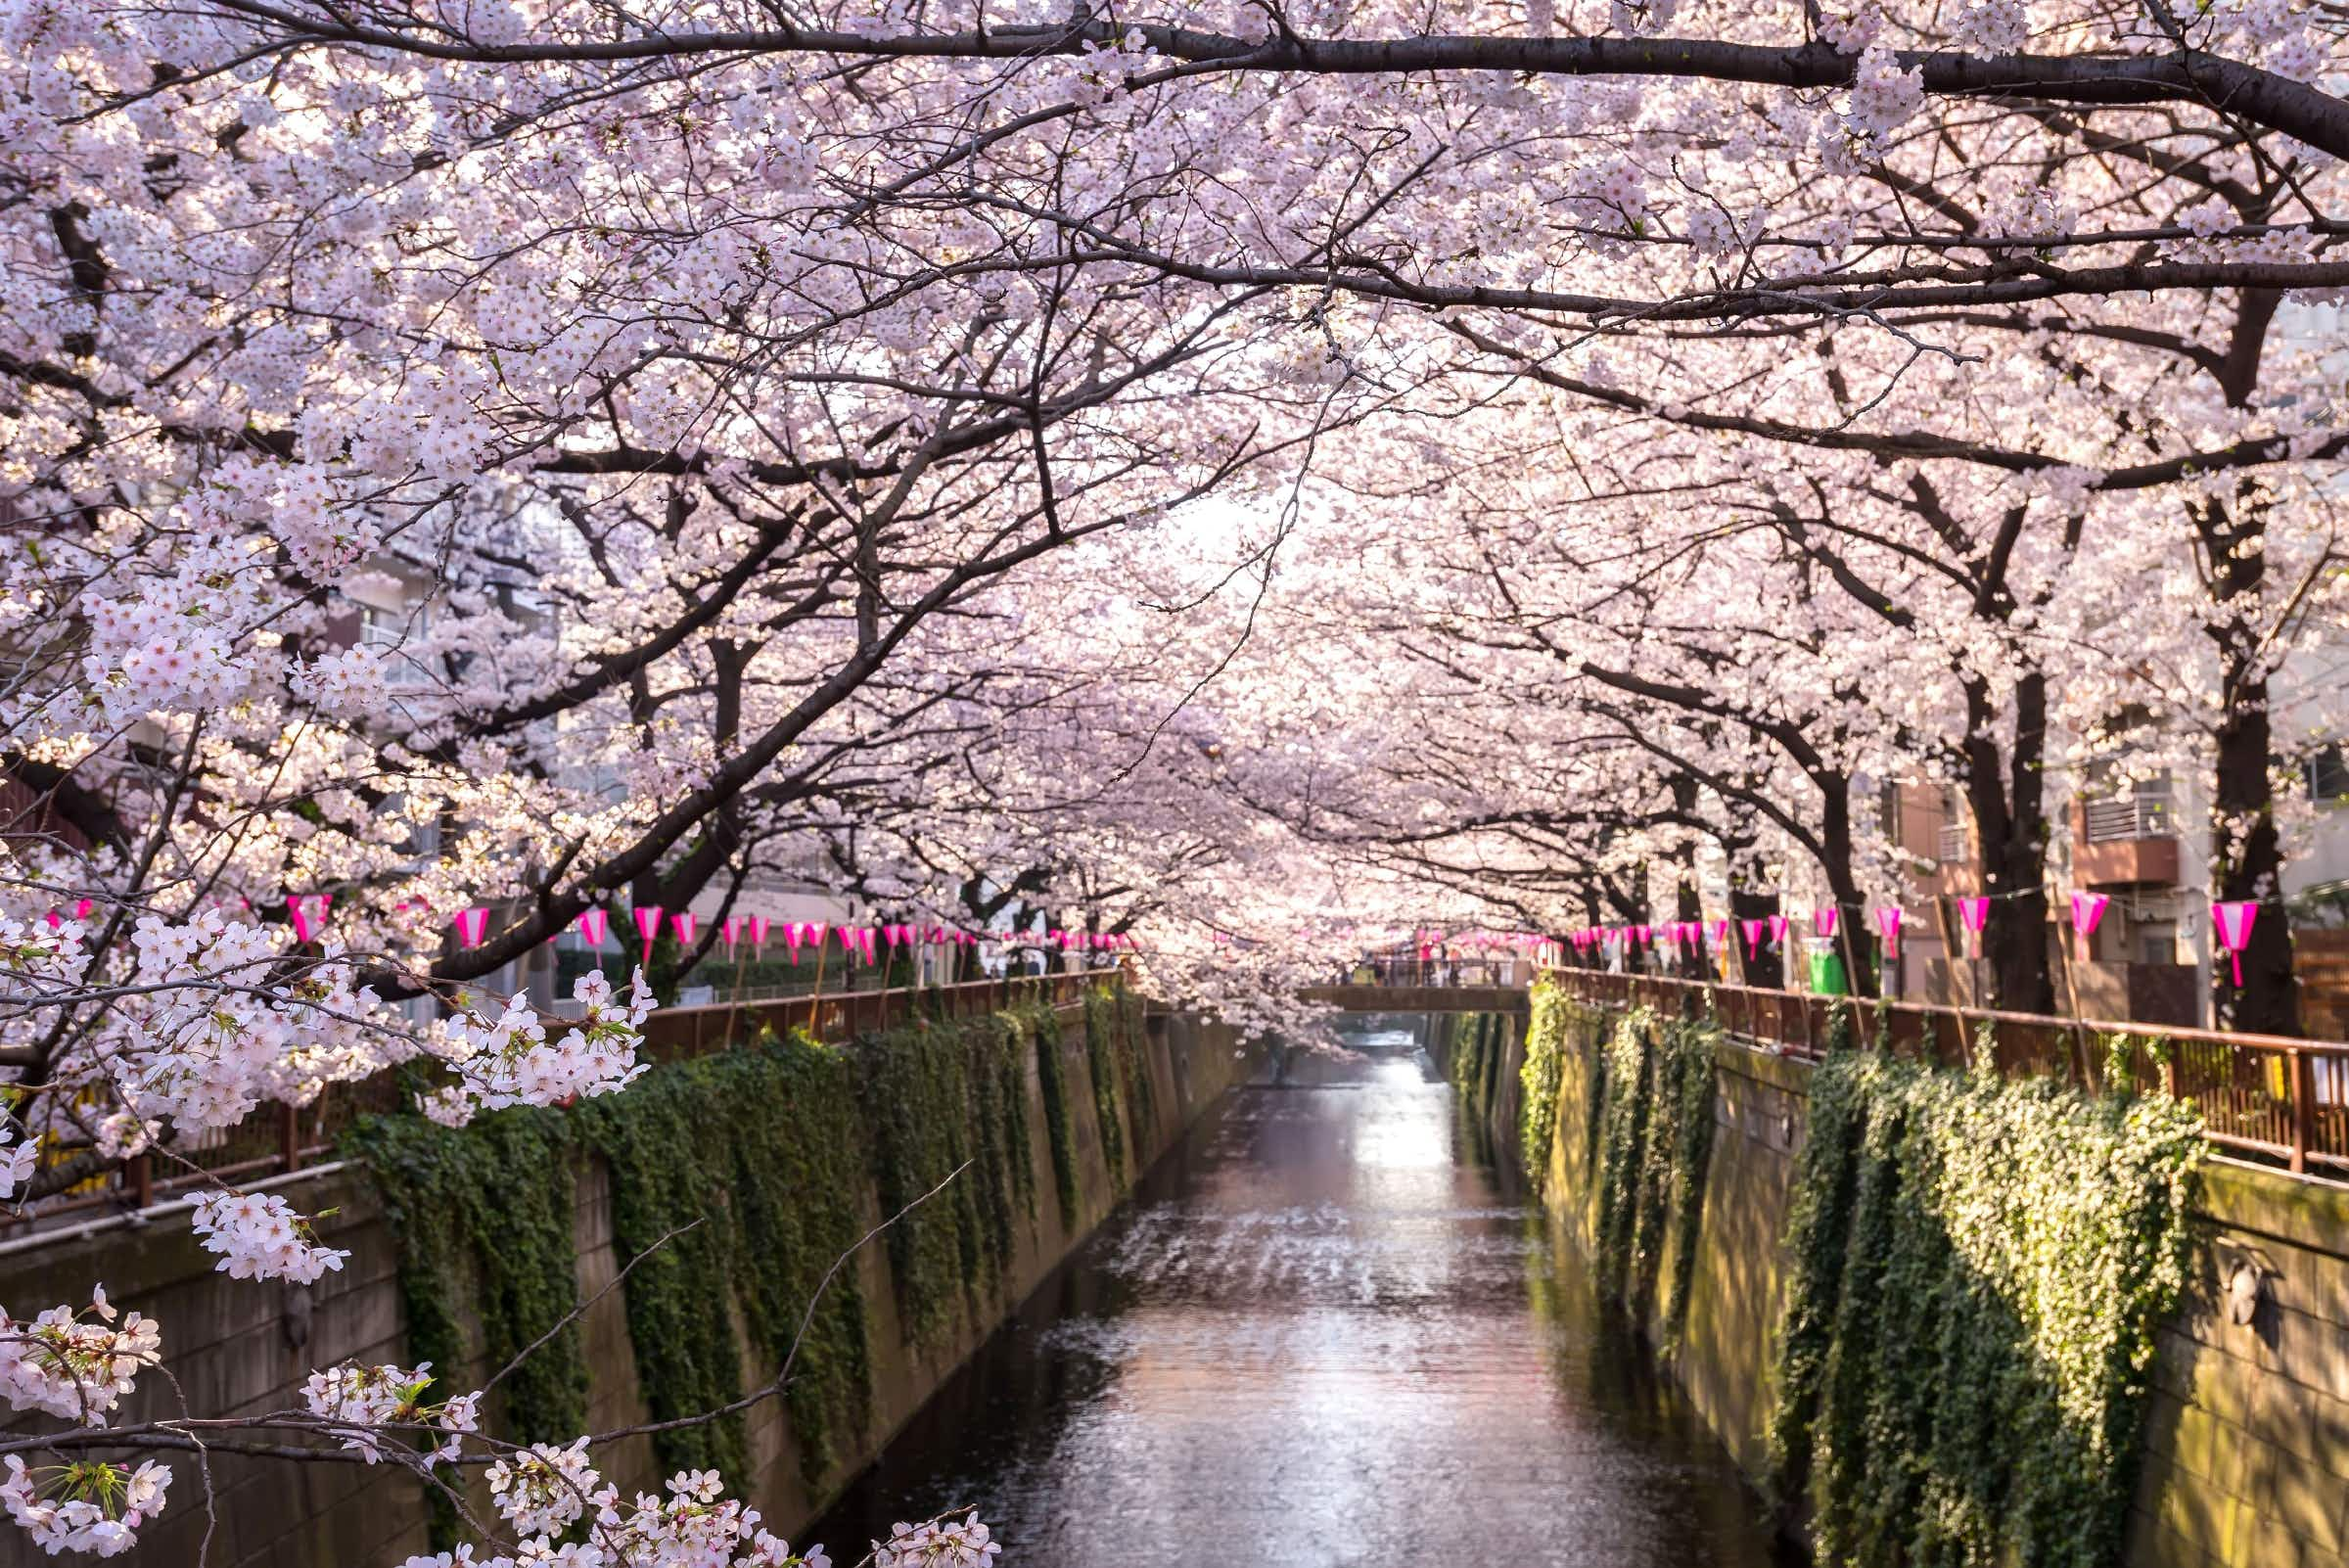 Discover when to see Japan's cherry blossoms this spring